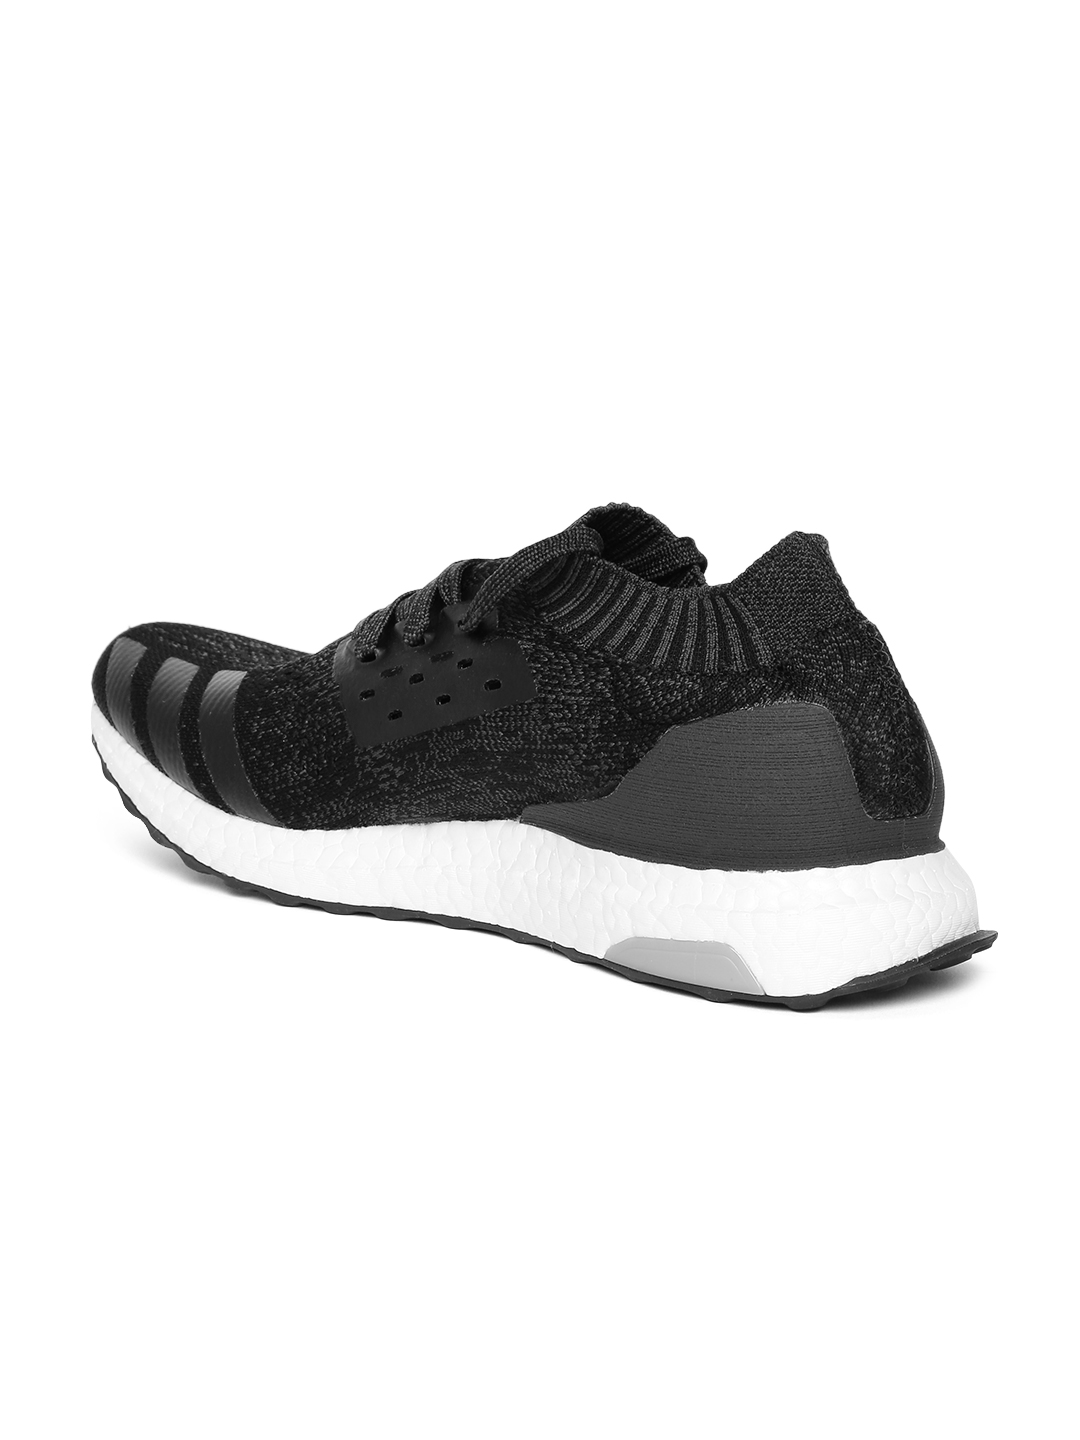 a4013a51c14 Buy ADIDAS Men Black   Charcoal Grey Ultraboost Uncaged Running ...